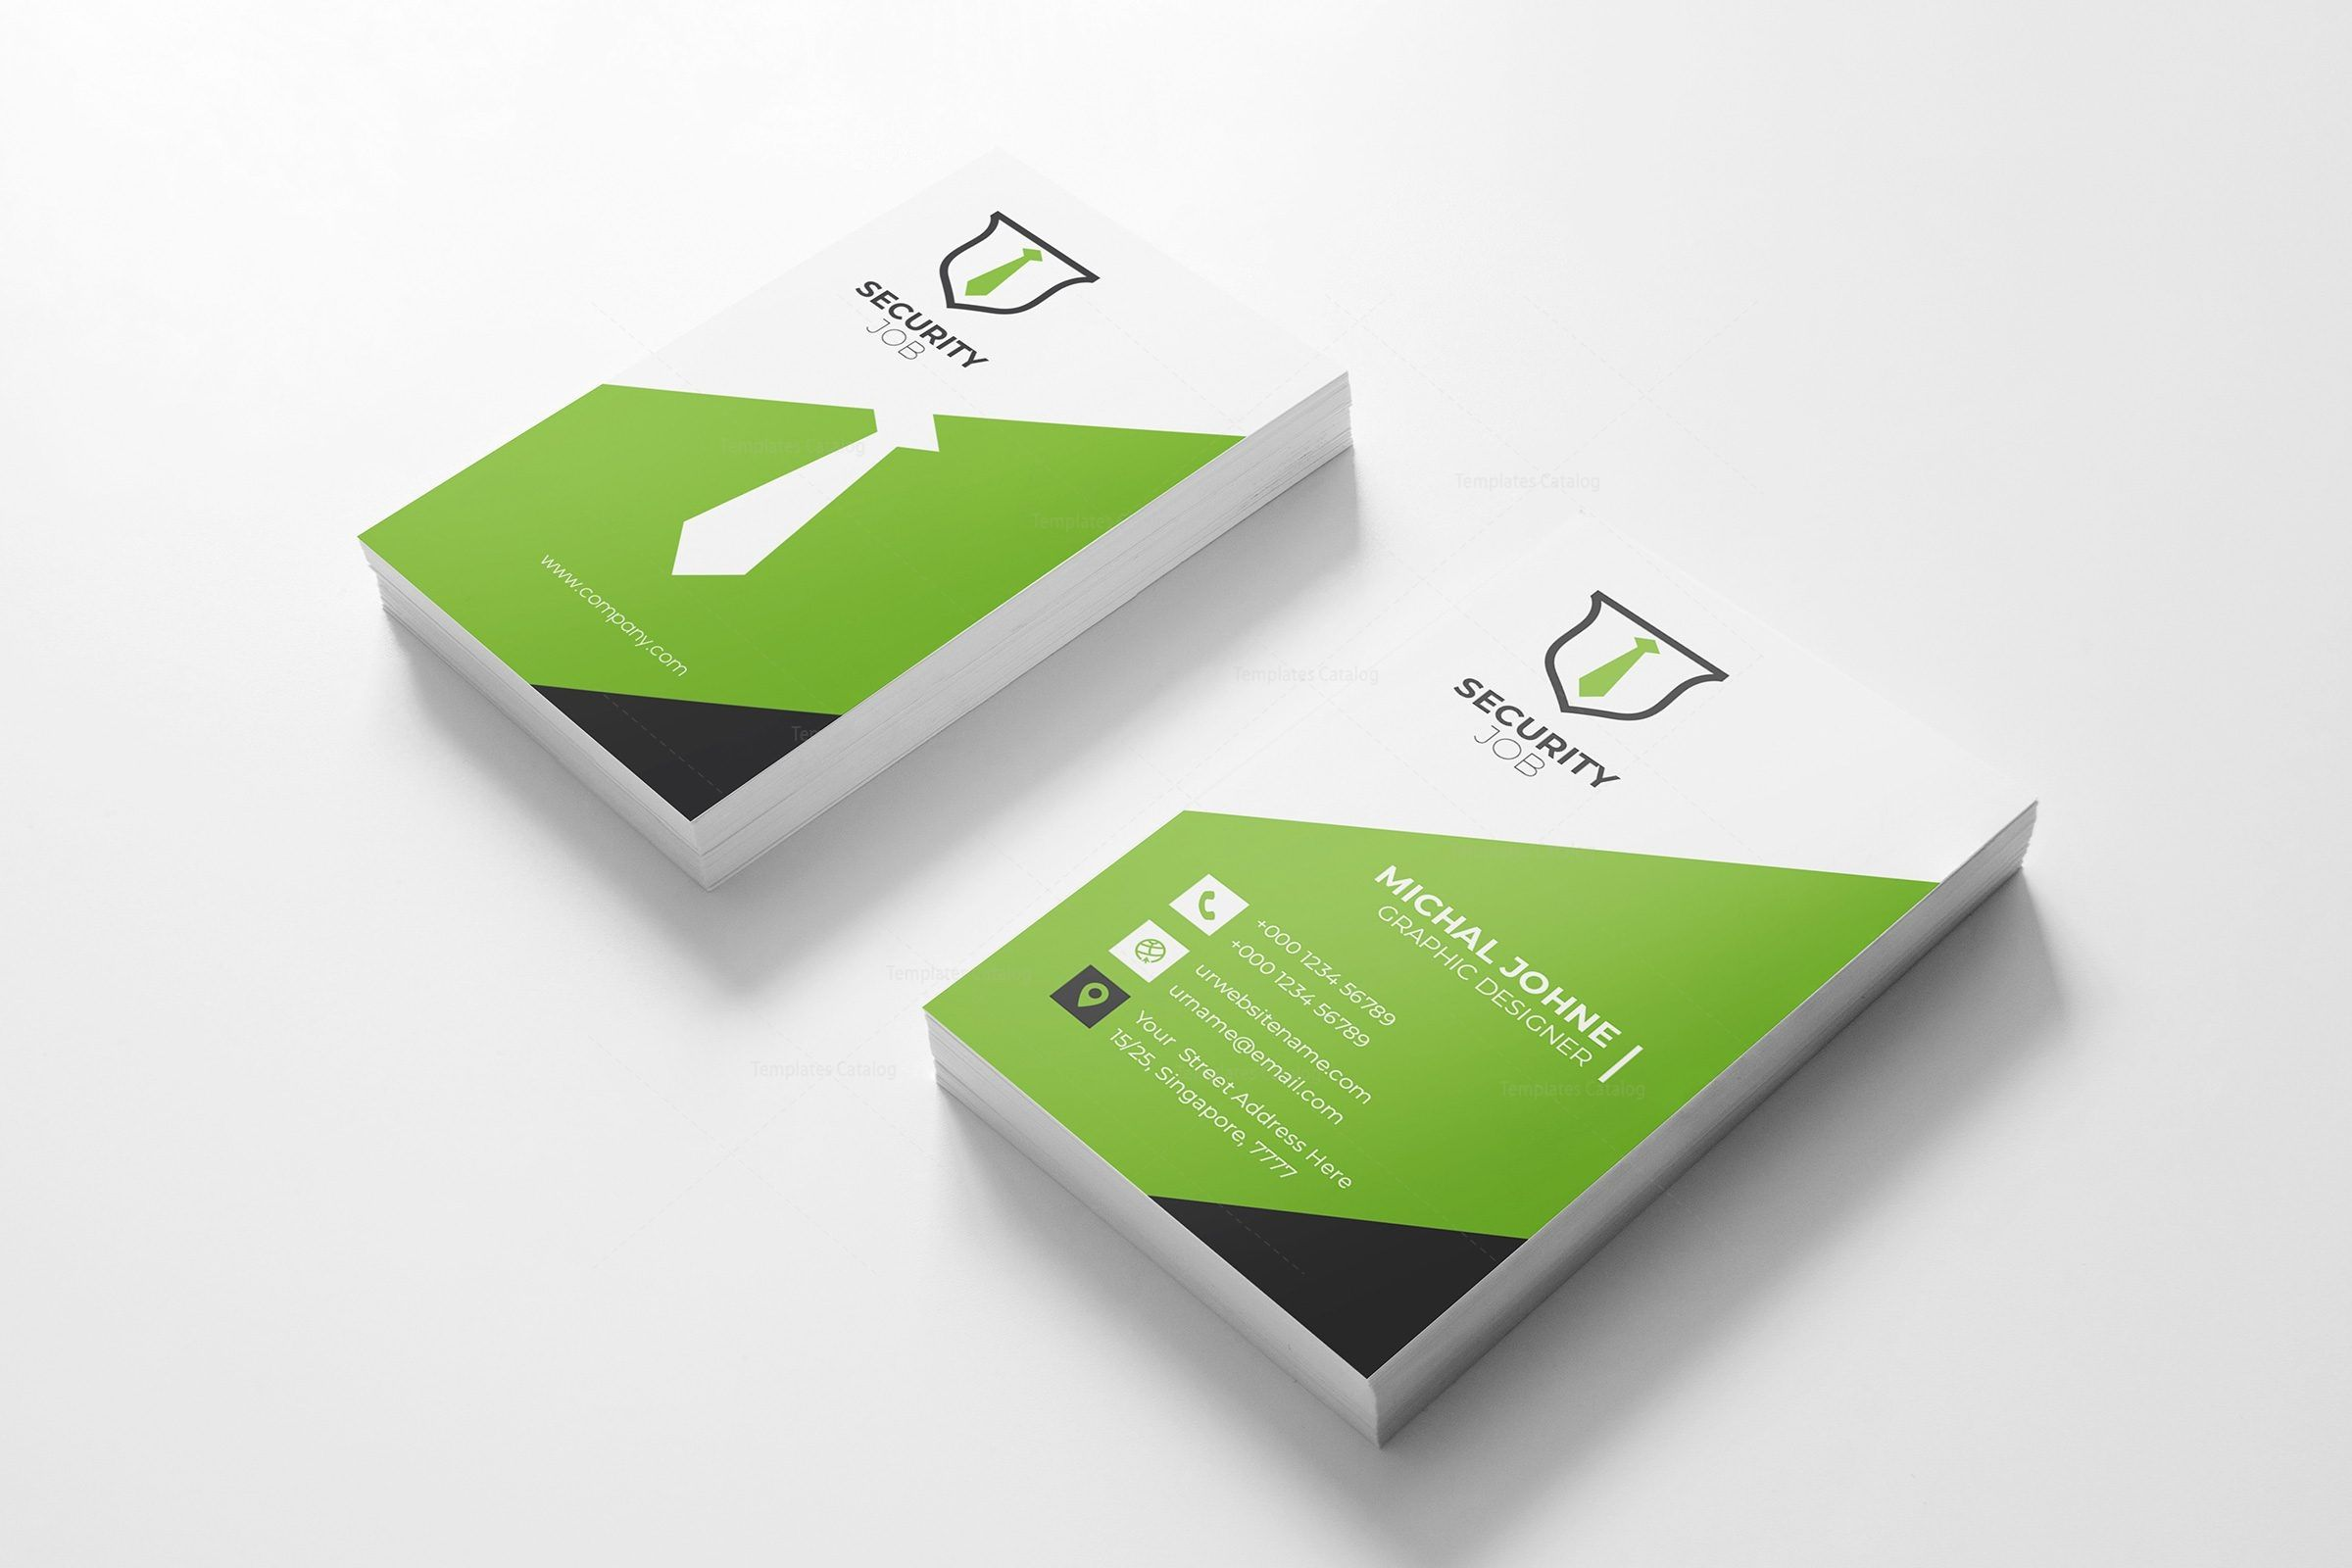 Security Vertical Business Card Design Template 001796 Template Catalog Vertical Business Cards Business Card Template Design Vertical Business Card Design